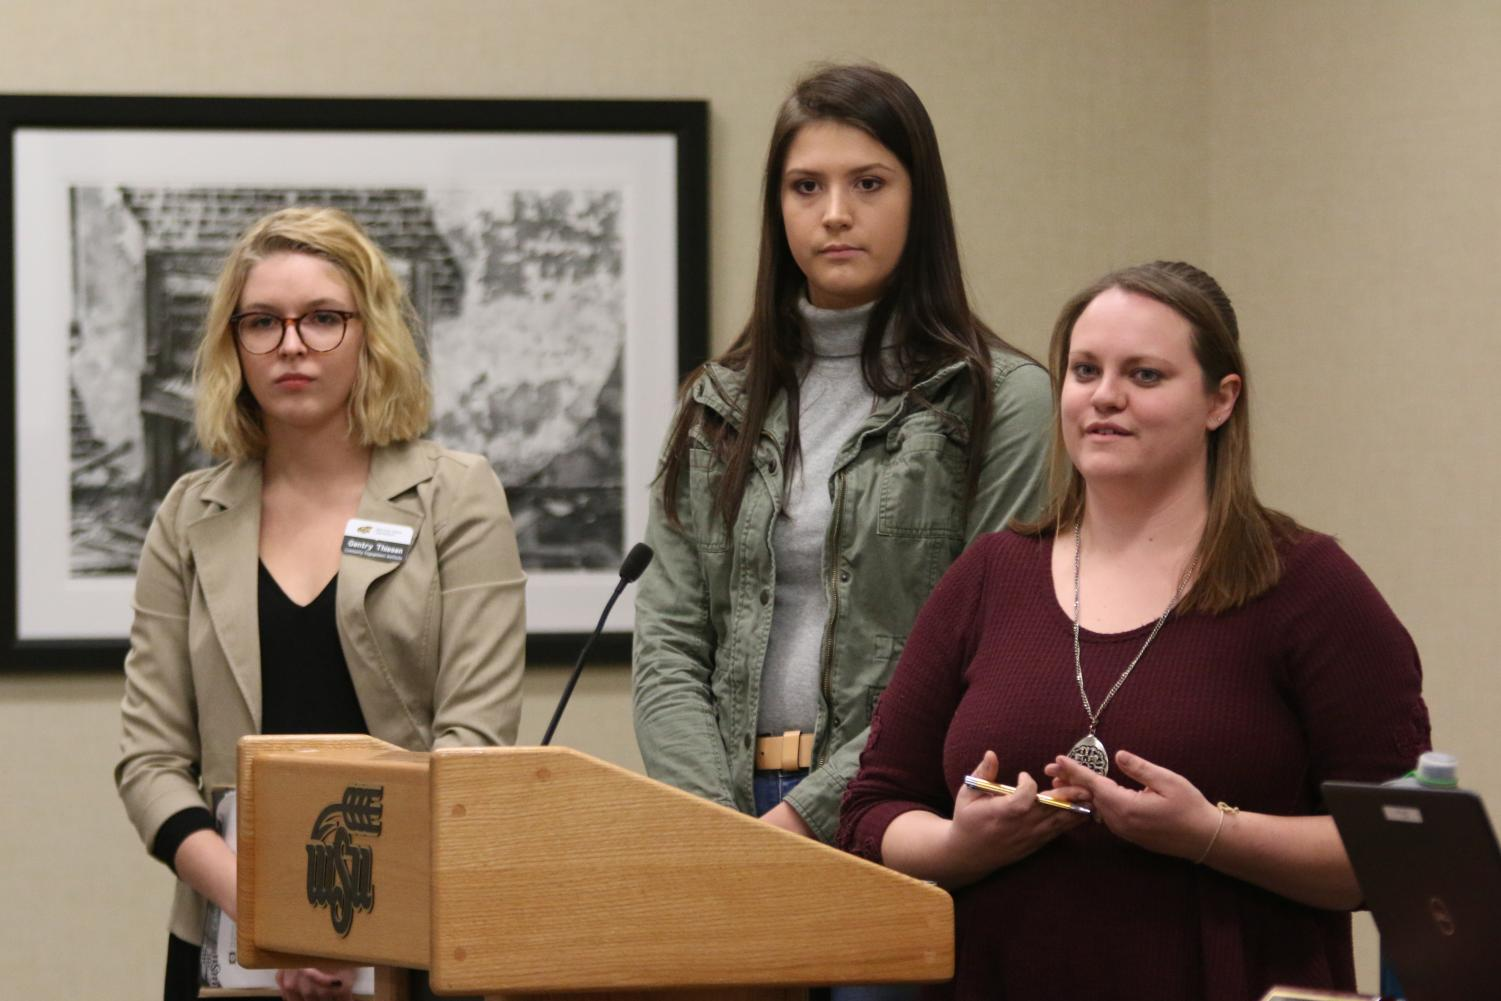 Members of the infrastructure steering committee Gentry Thiesen (left), Hannah Foster (center), and Ashley Estes (right) present during open forum of the Student Government Association meeting Wednesday, Nov. 14.